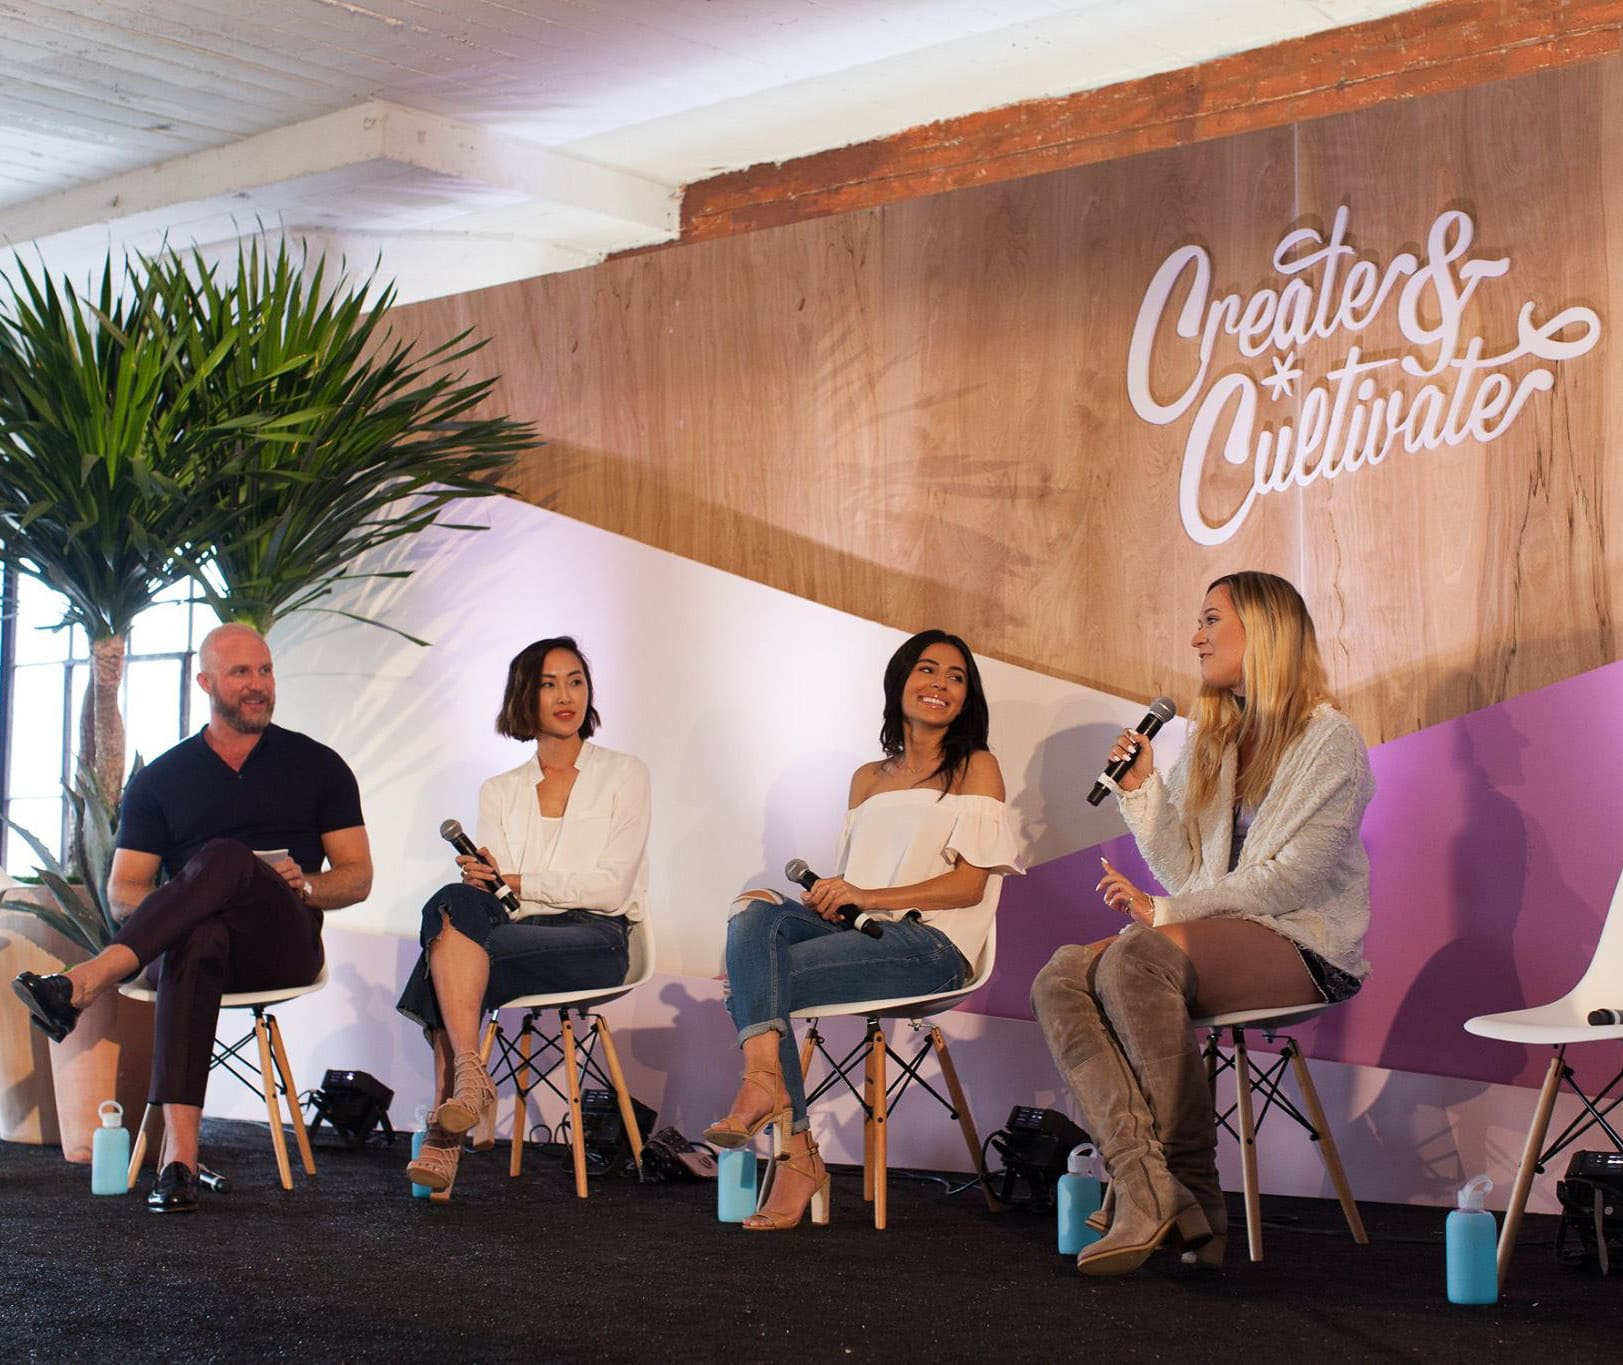 Teni Panosian from Miss Maven, Chriselle Lim from The Chriselle Factor, and Alisha Marie | Create + Cultivate Los Angeles 2016 Conference Recap + Review | Beauty and Style Blogger Ashley Brooke Nicholas